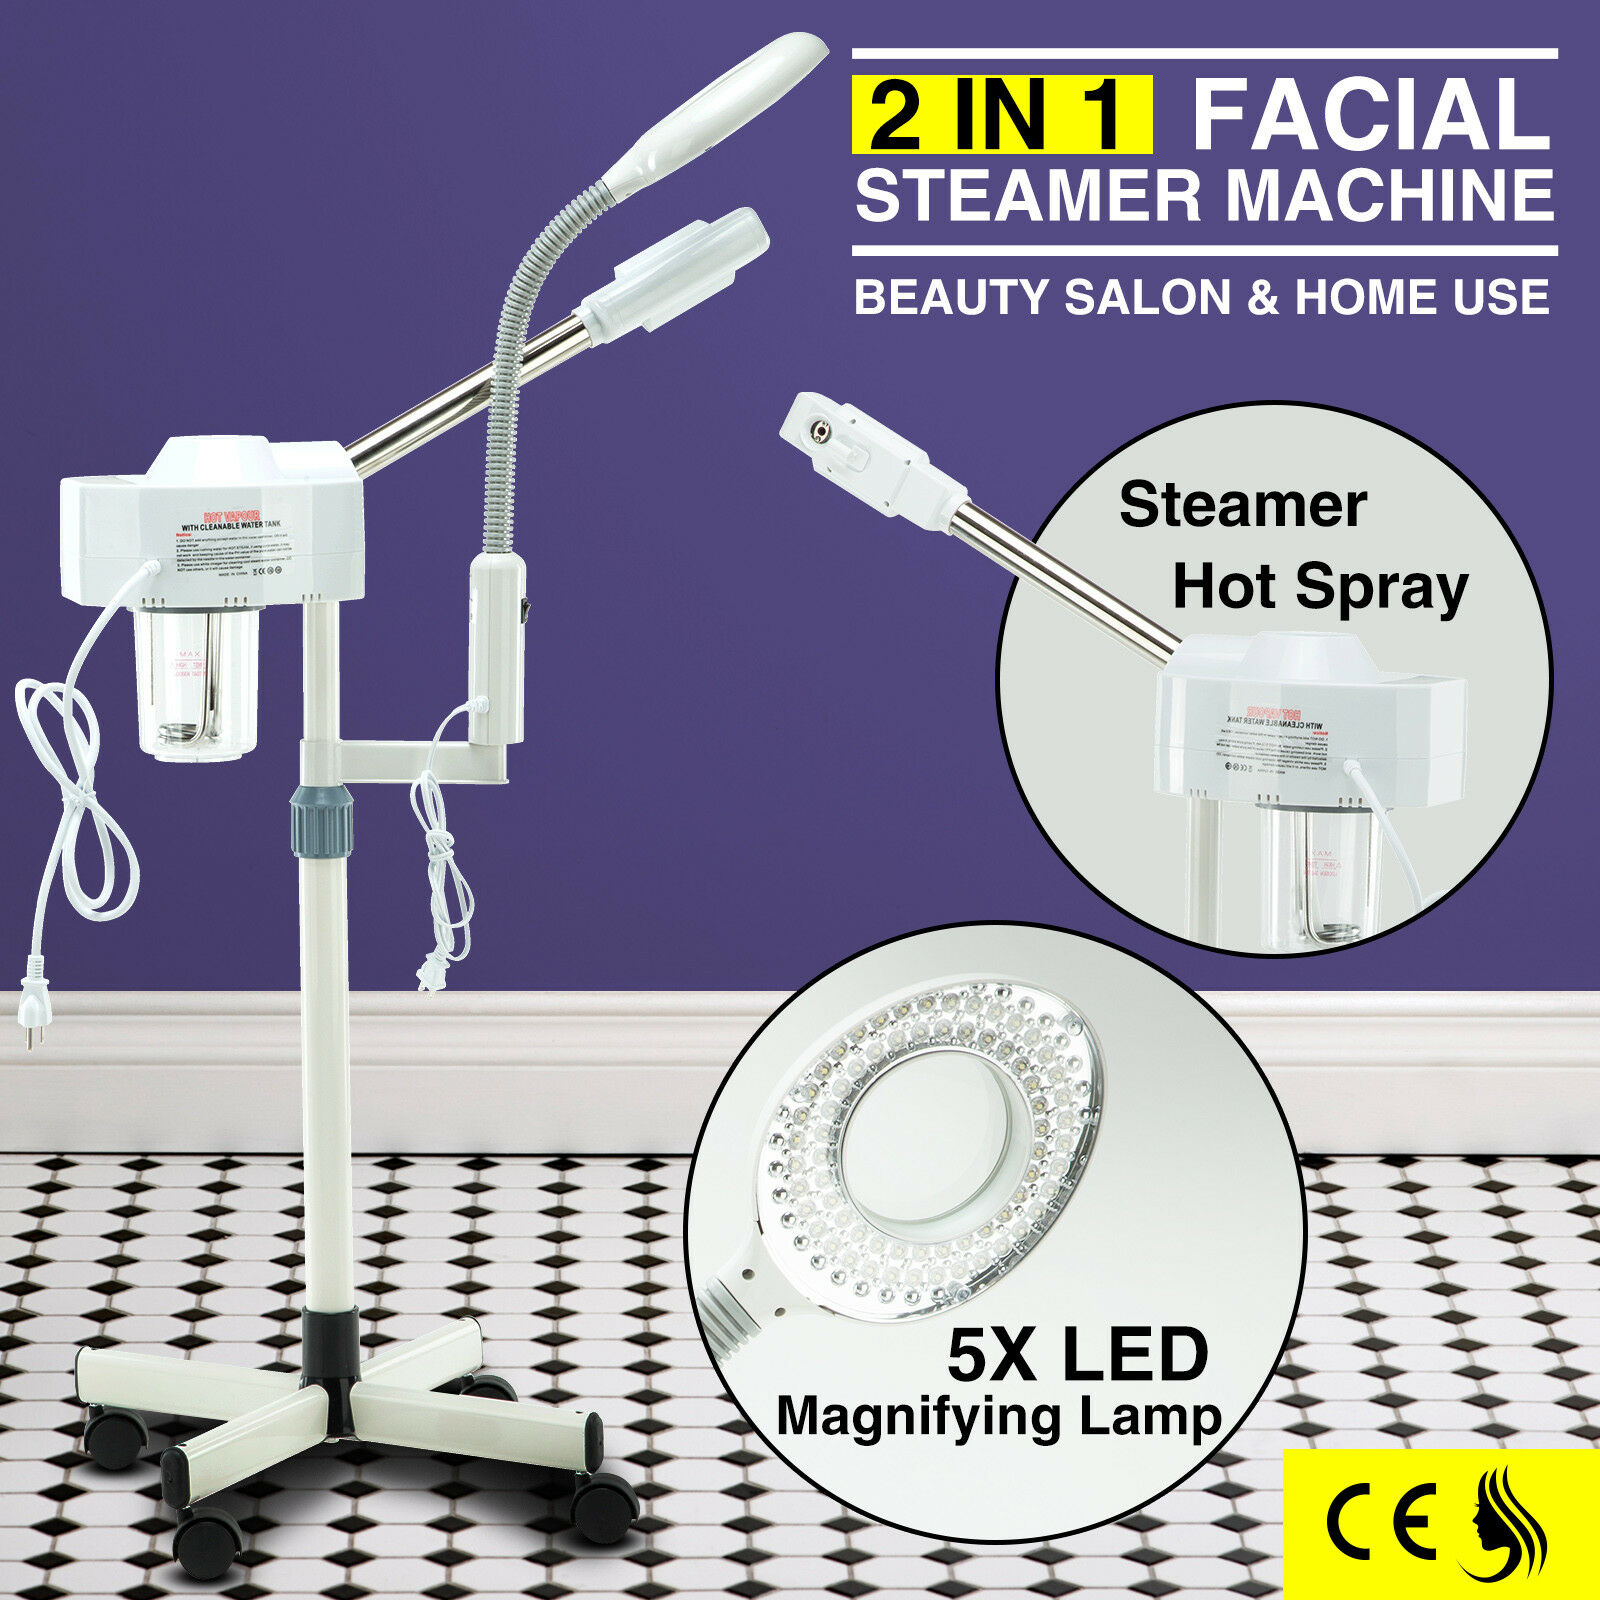 2 In 1 Facial Steamer Magnifying Lamp Professional Skin Care